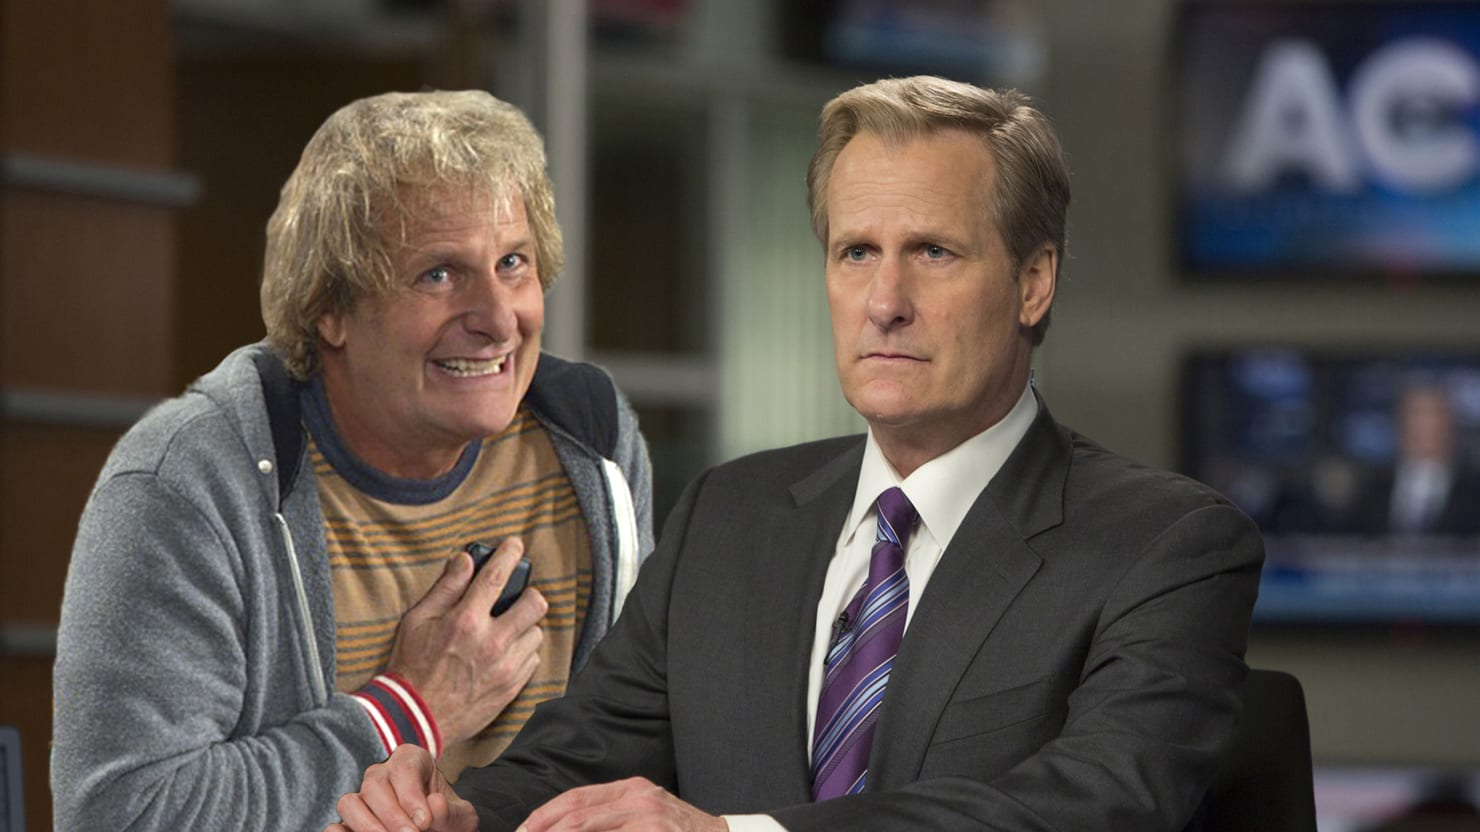 Jeff Daniels Defends Aaron Sorkin and the Dumb and Dumber Toilet